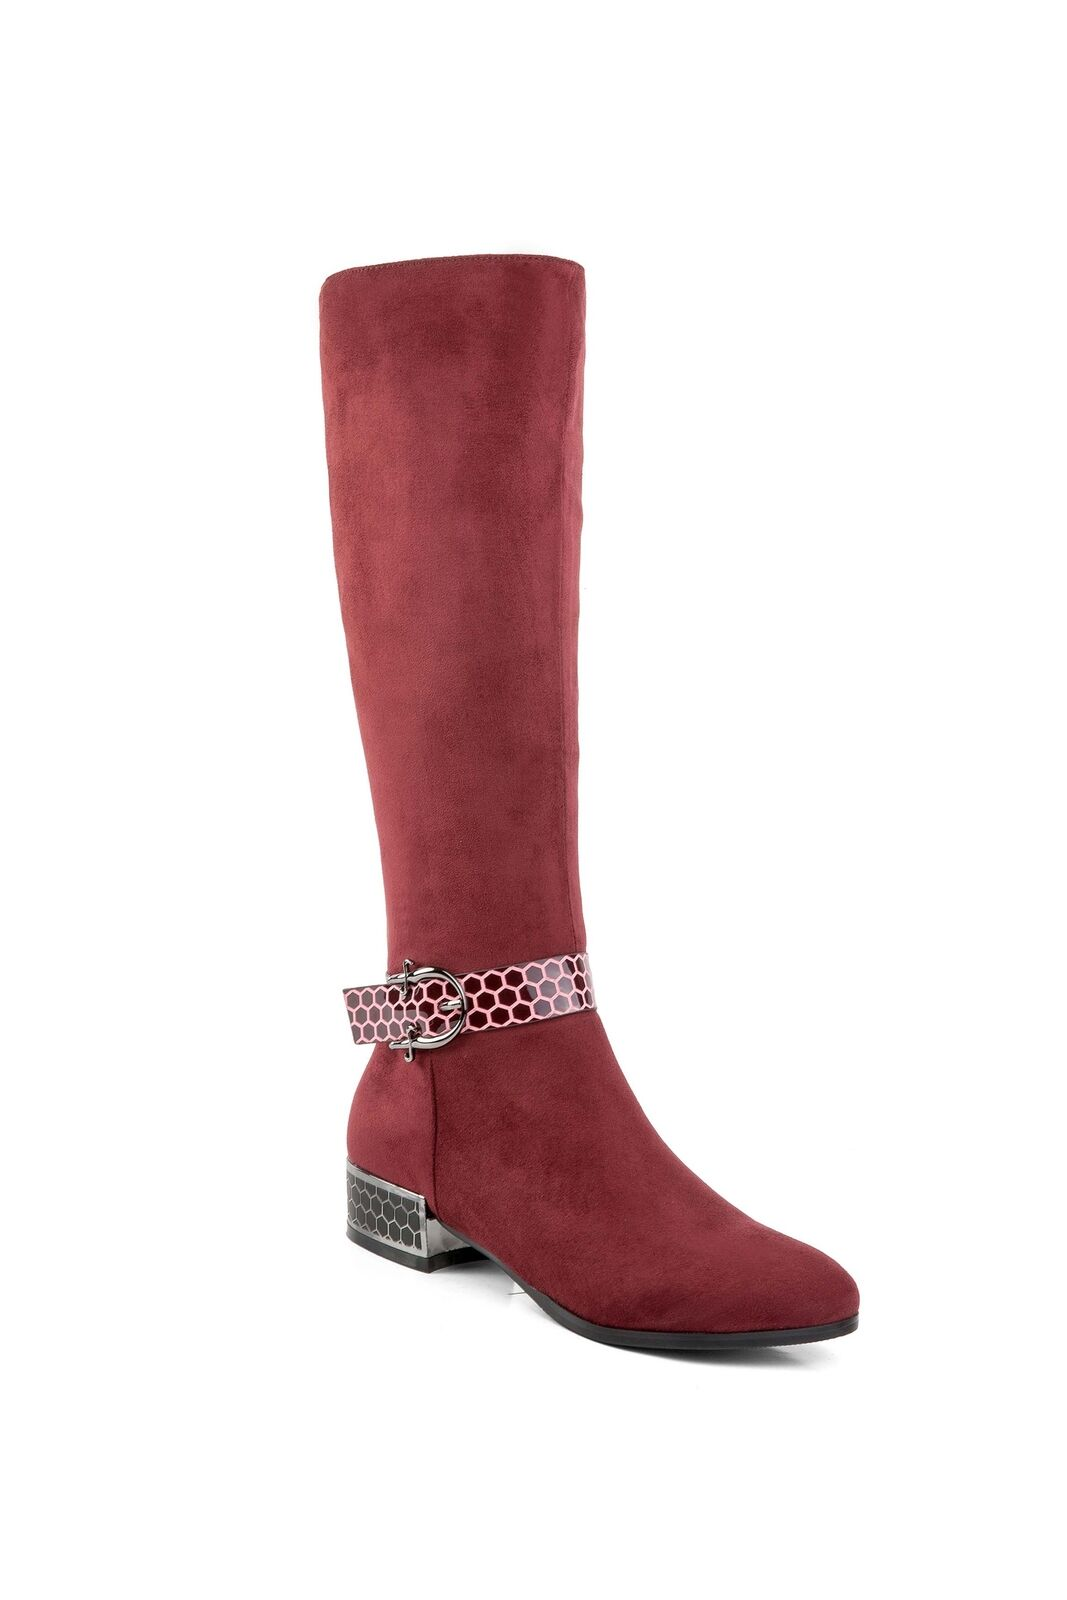 Ann Creek Women's 'Orizea' Beehive Patterned Straps Boots